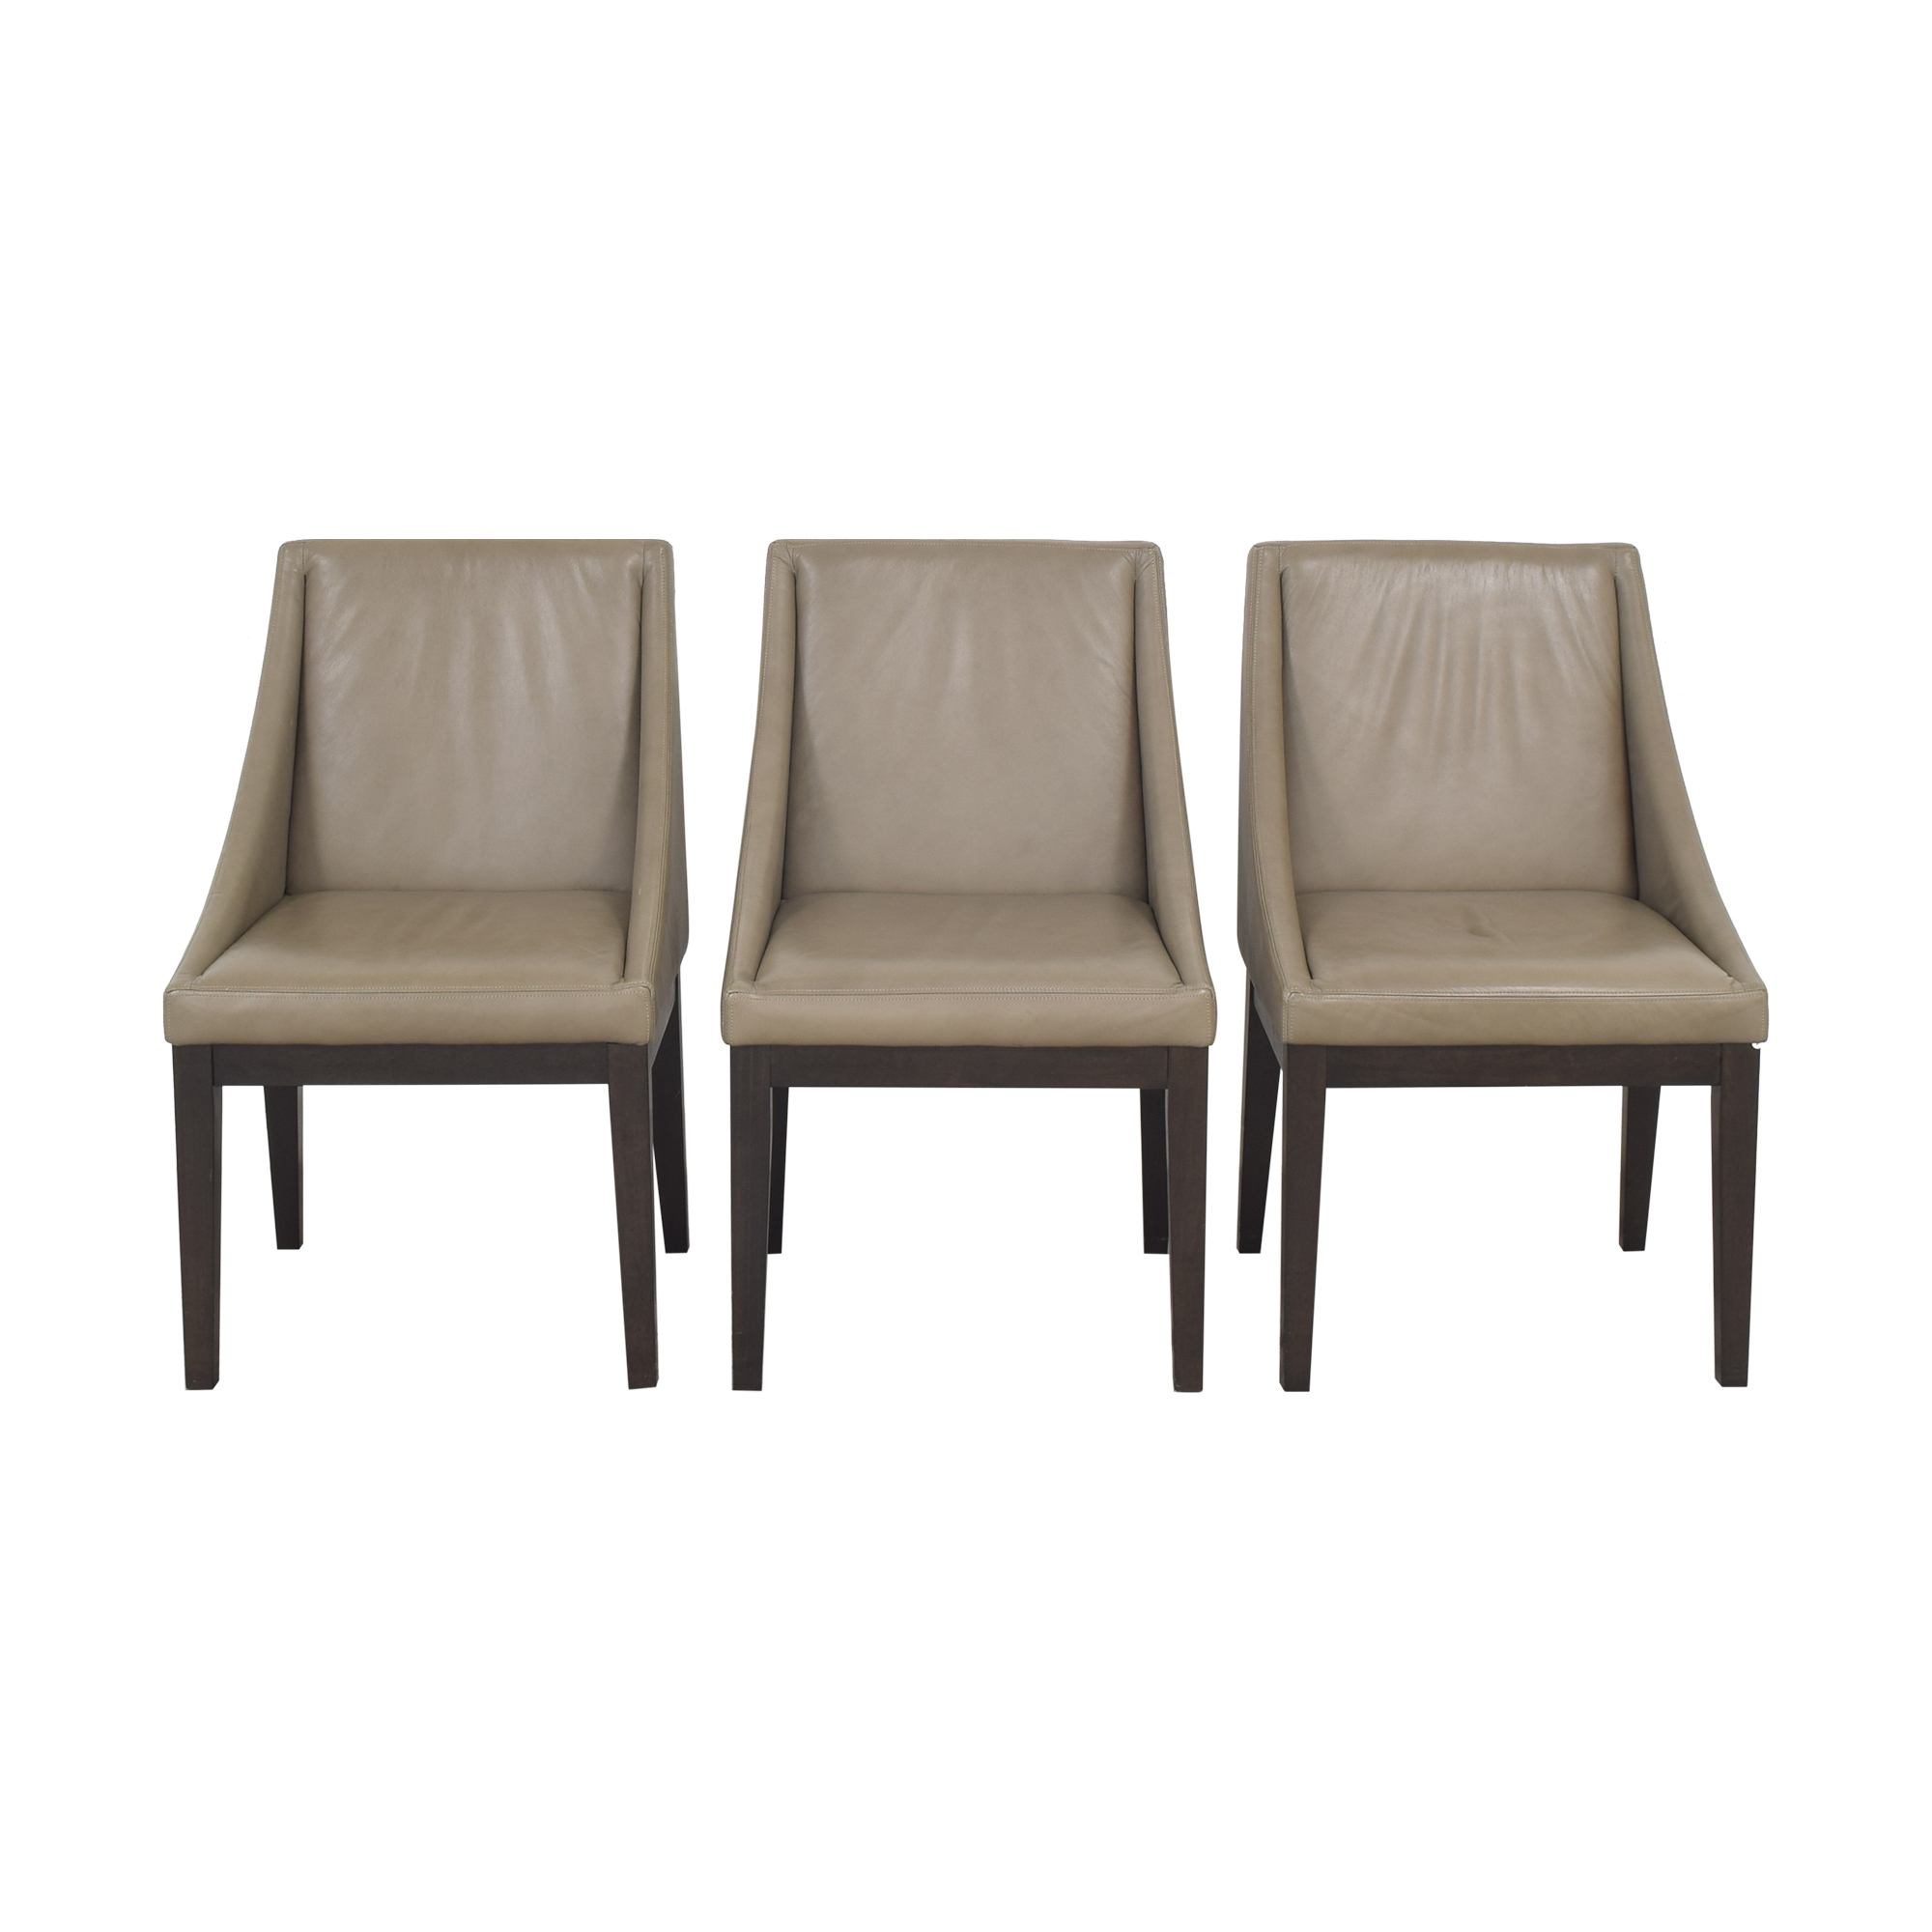 West Elm Curved Dining Chairs / Dining Chairs